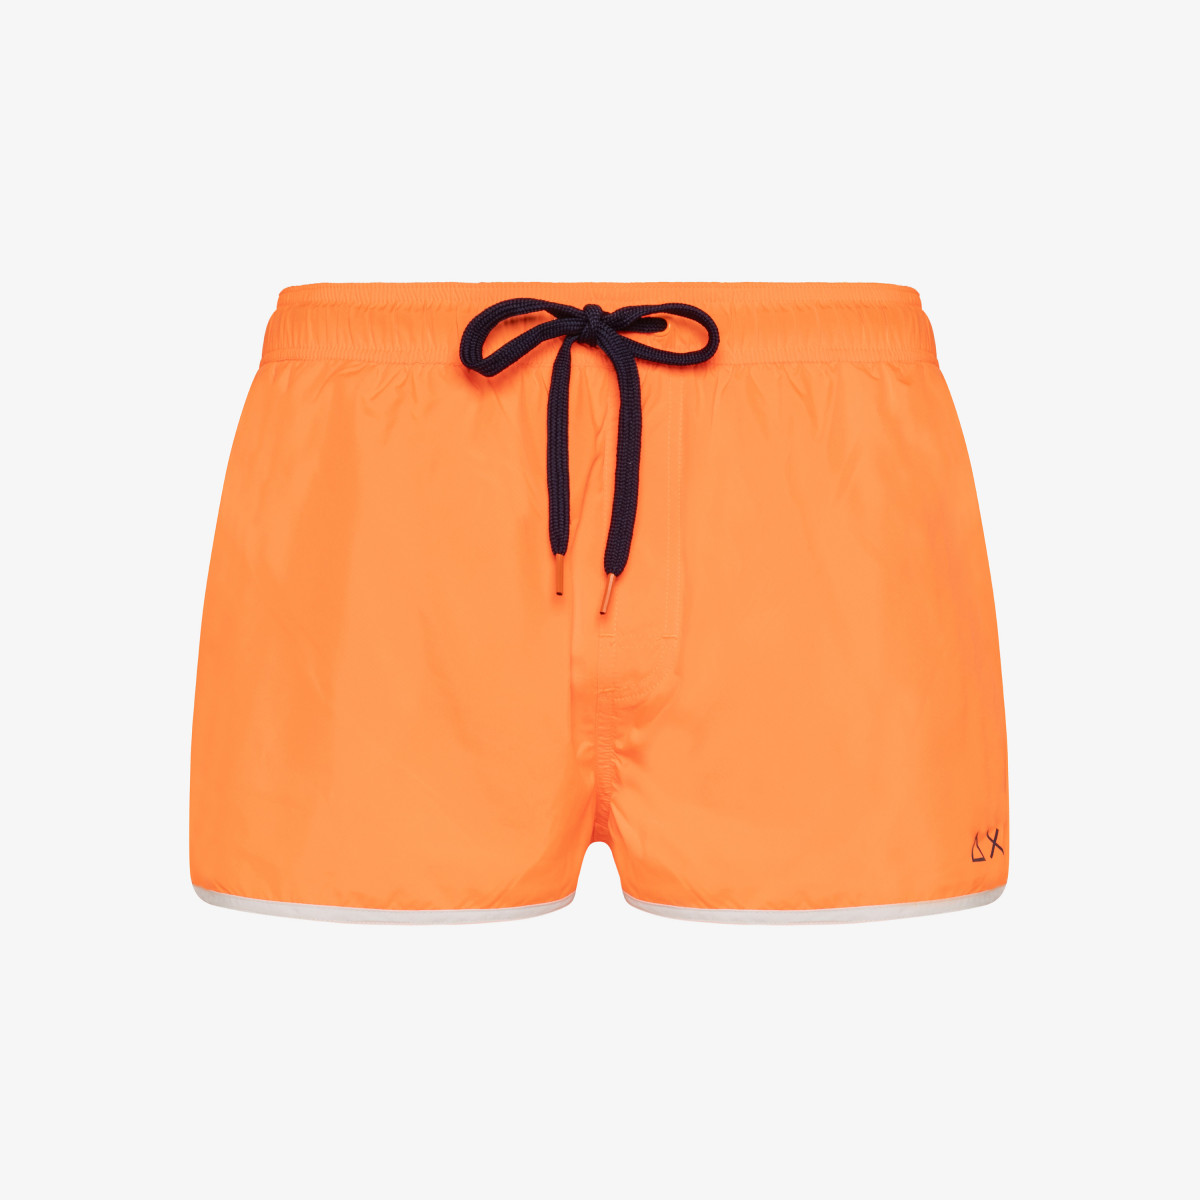 SWIM PANT SOLID BINDING SMALL LOGO ORANGE FLUO